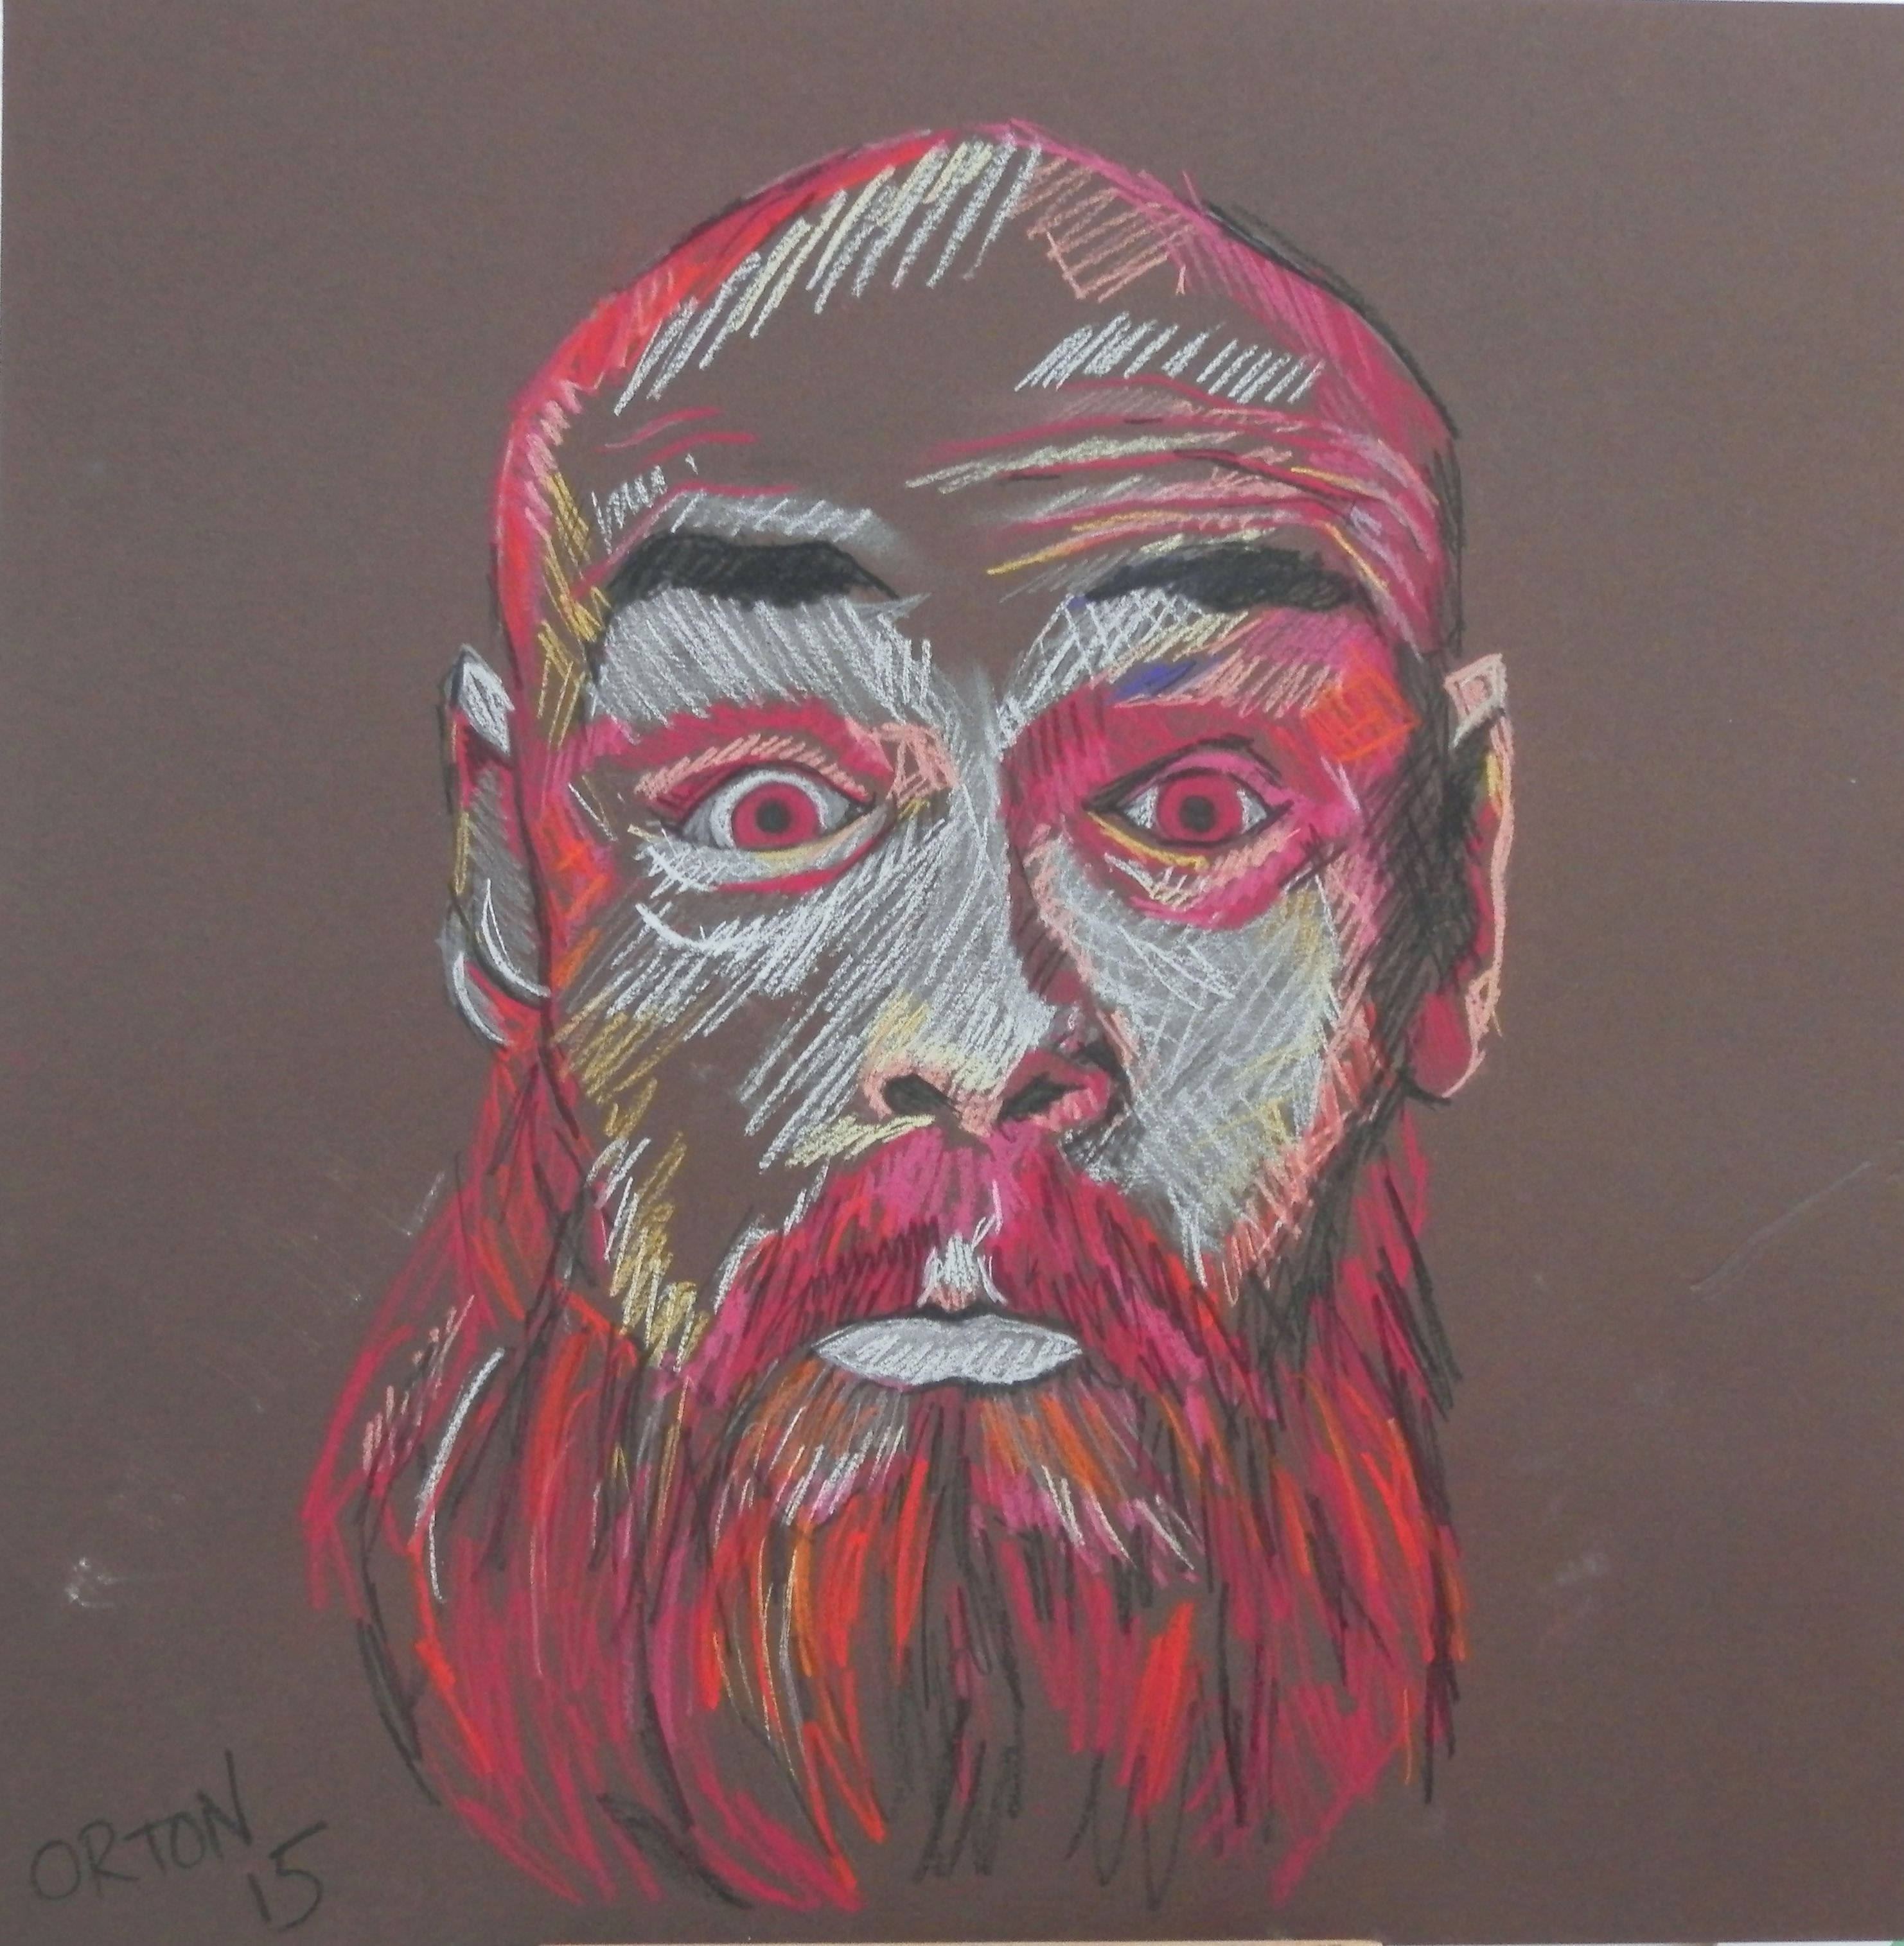 Young Man With Beard by Andrew Orton, soft pastel on card 2015